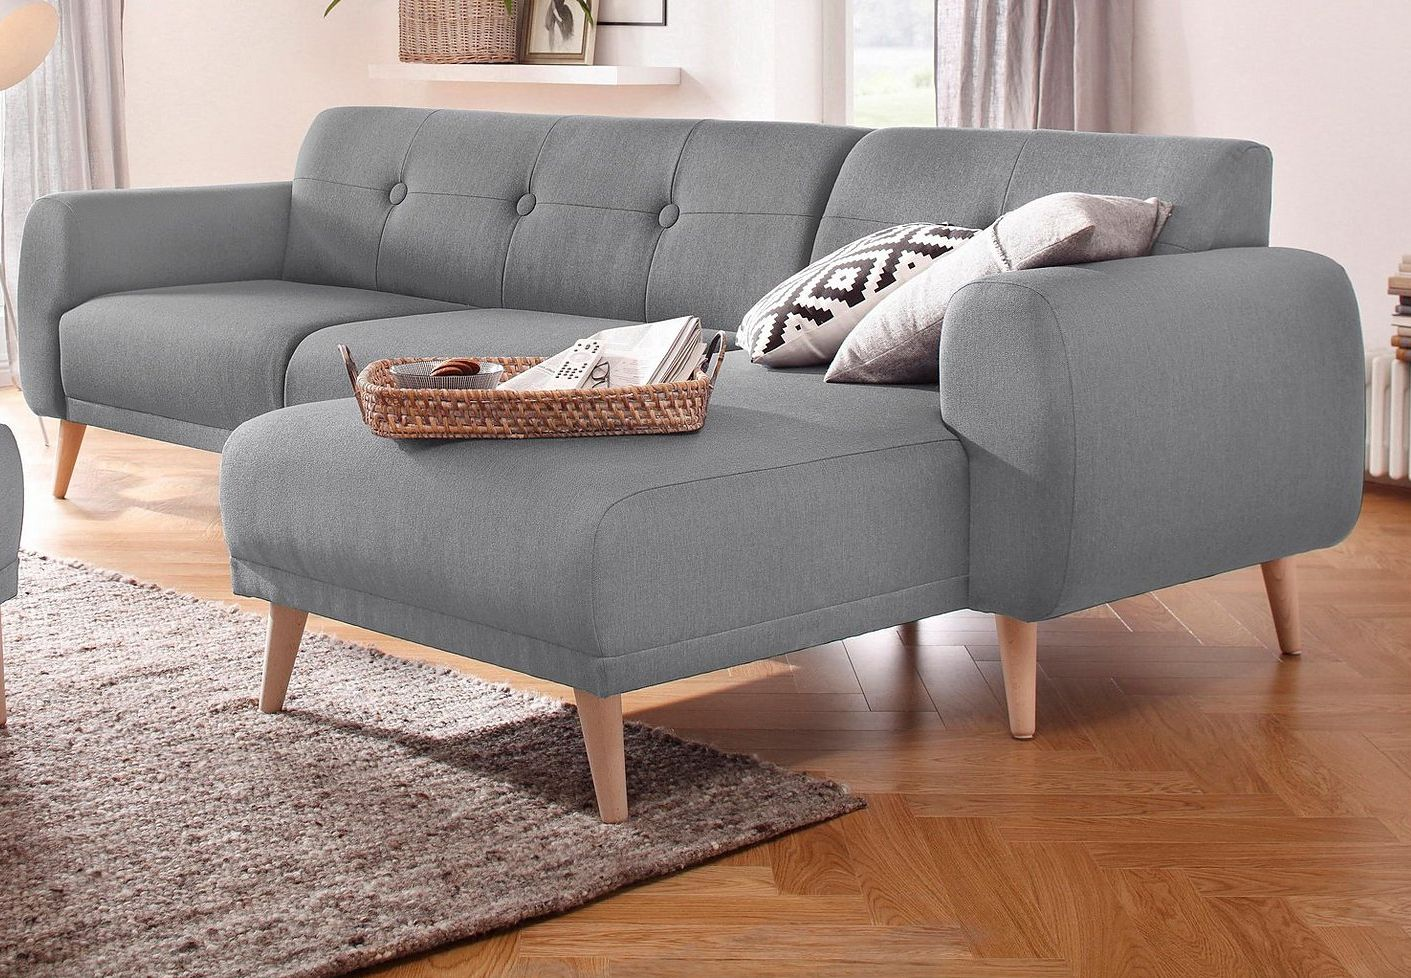 Home Affaire Ecksofa Rice Incl Hocker Mit Federkern Otto Möbel Ecksofas Ecksofa